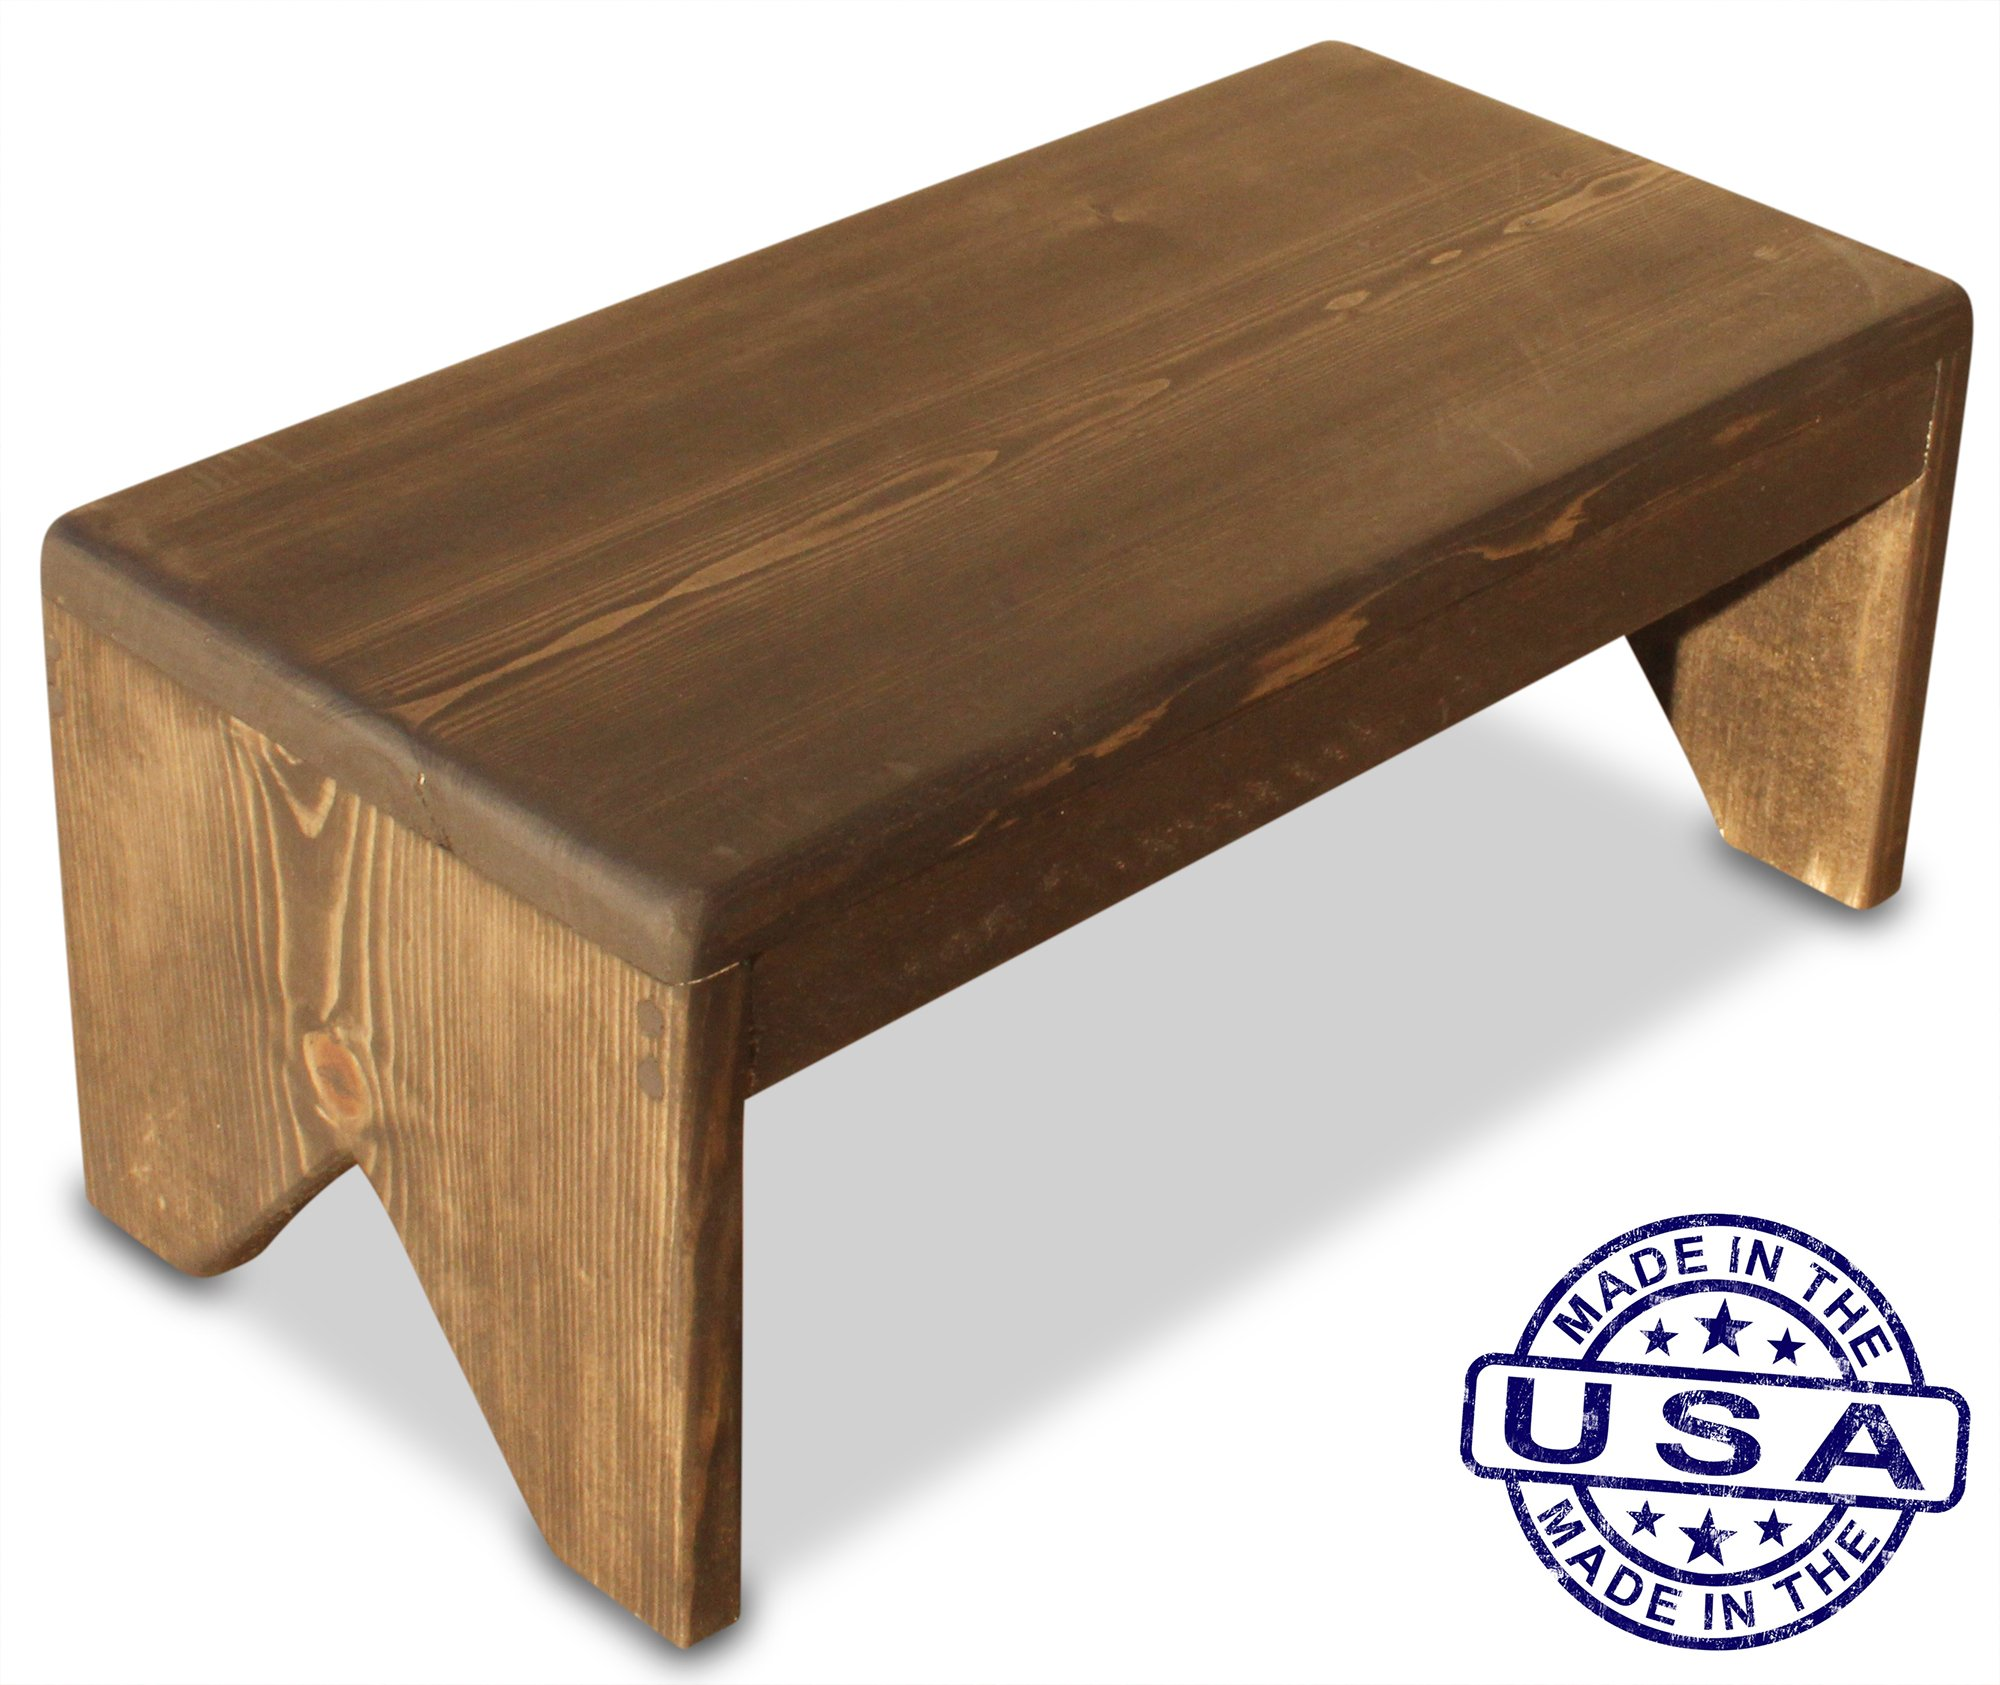 S.B. Handmade - Solid Wood Step Stool, 250 Pound Capacity, Hand Made in U.S.A. (18'' wide x 8'' tall, Ebony)